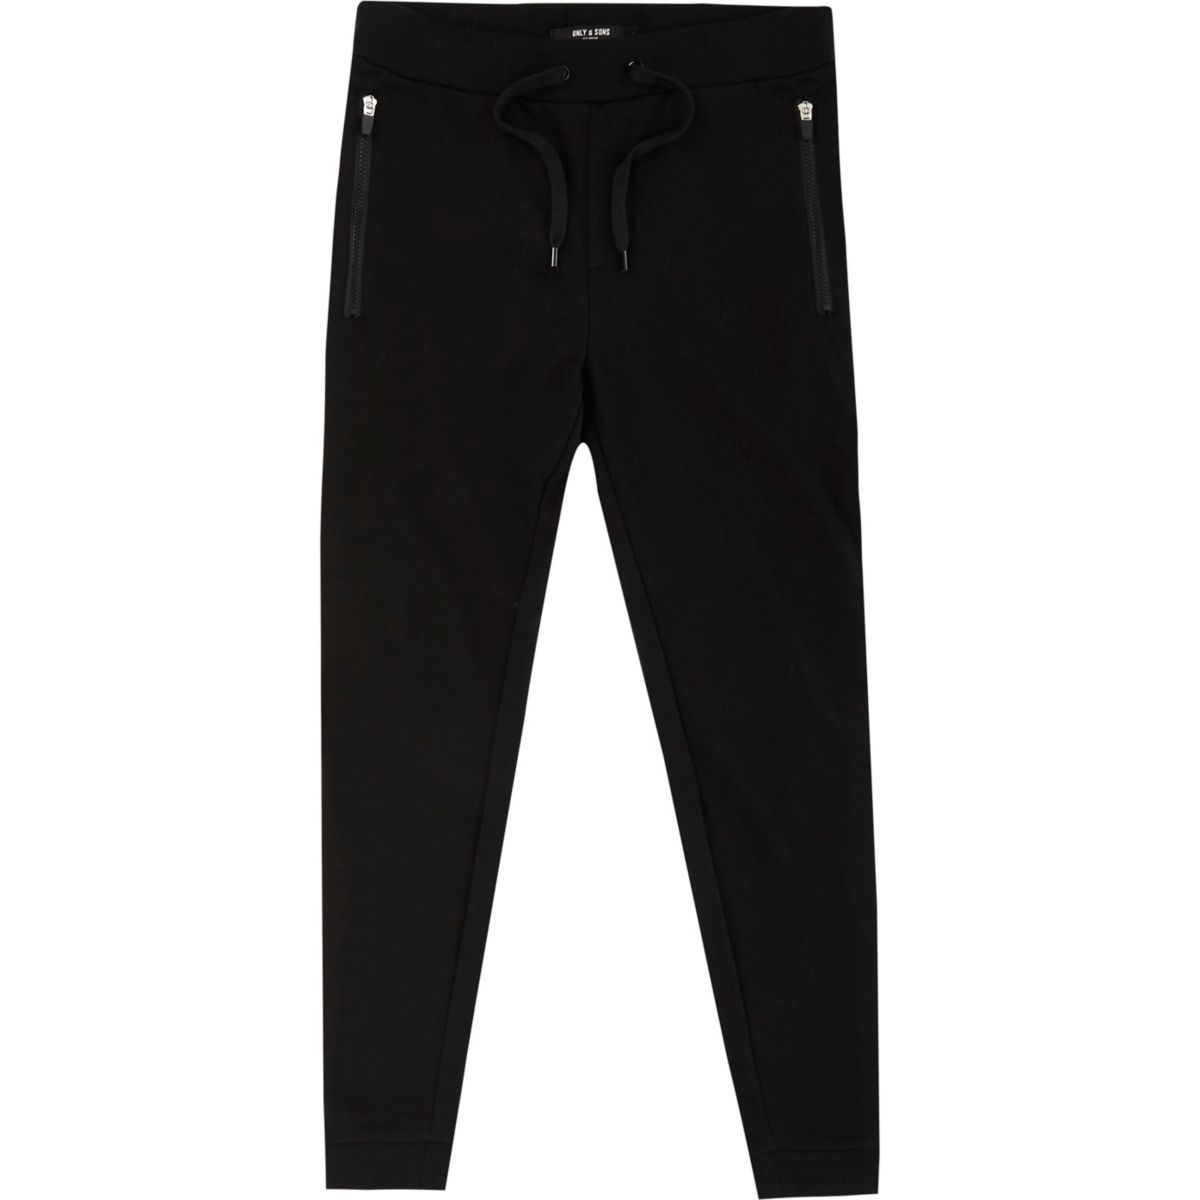 Only & Sons – Pantalon de jogging imprimé noir